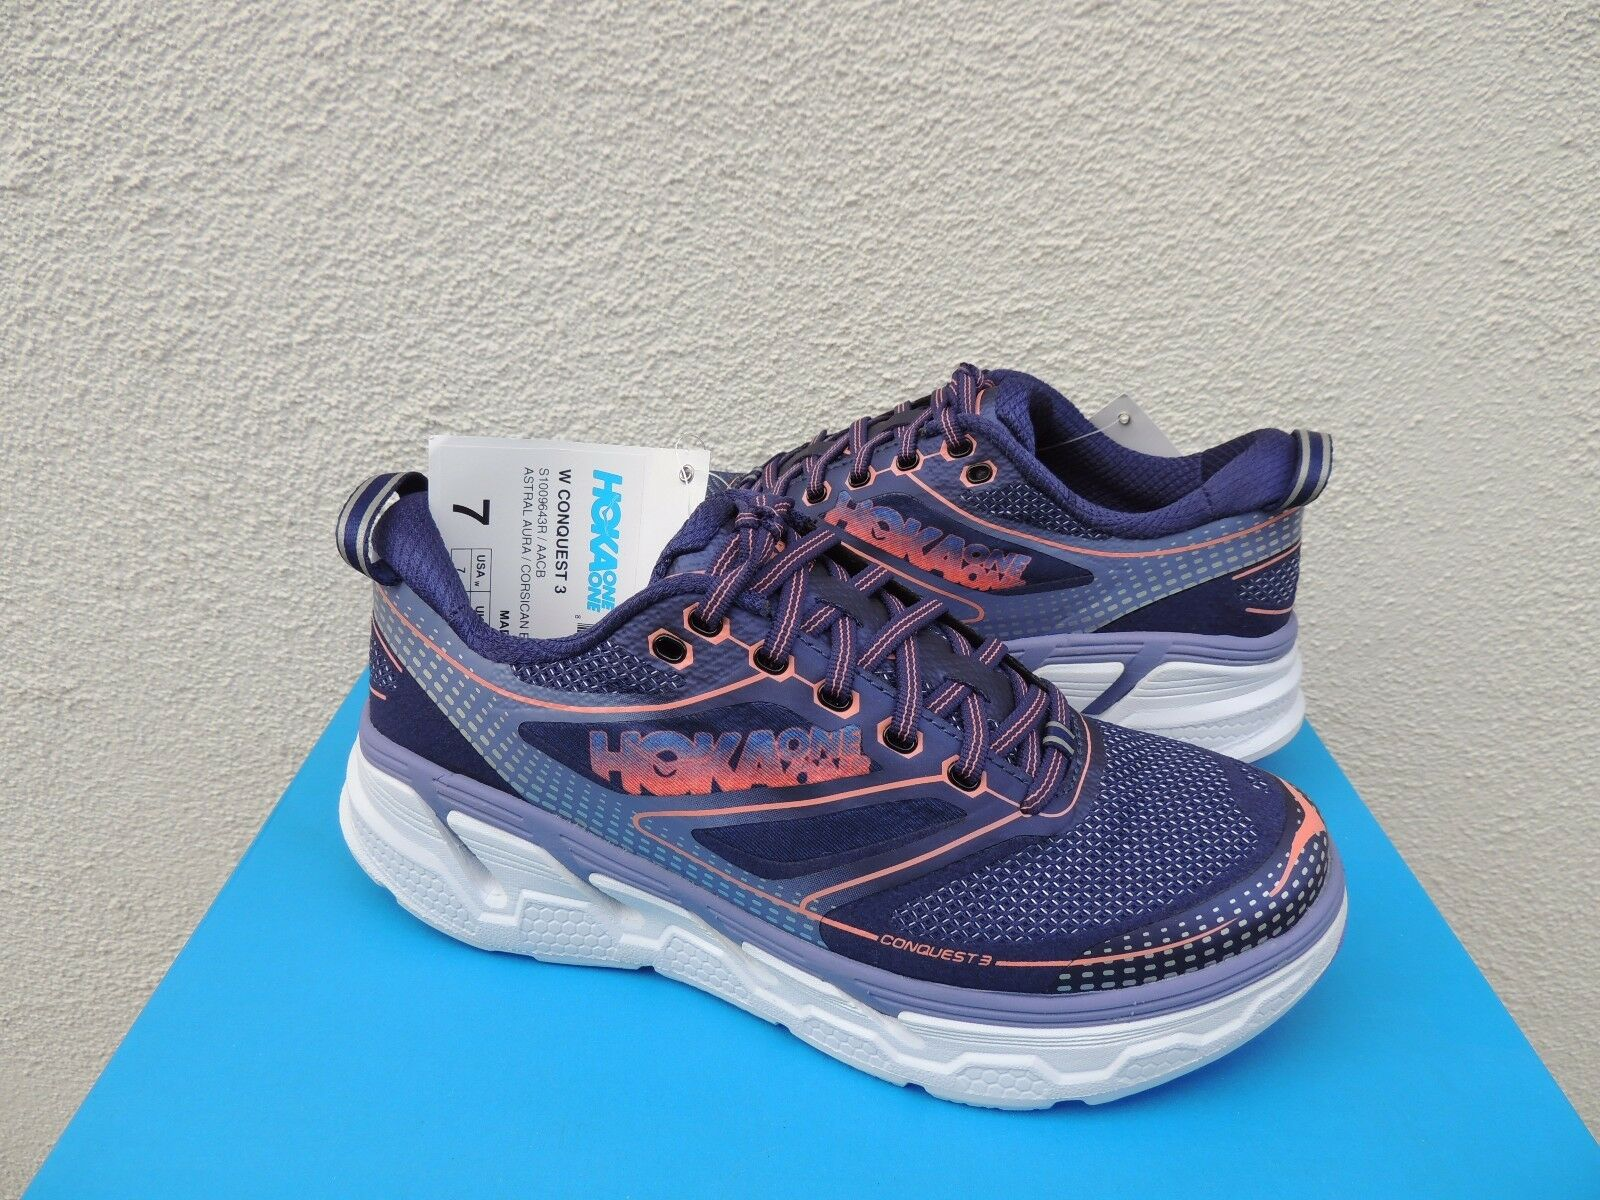 HOKA ONE ONE CONQUEST 3 ASTRAL BLUE AURA/ BLUE ASTRAL RUNNING SHOES, US 7/ EUR 38 2/3  ~ NWT 6402f5